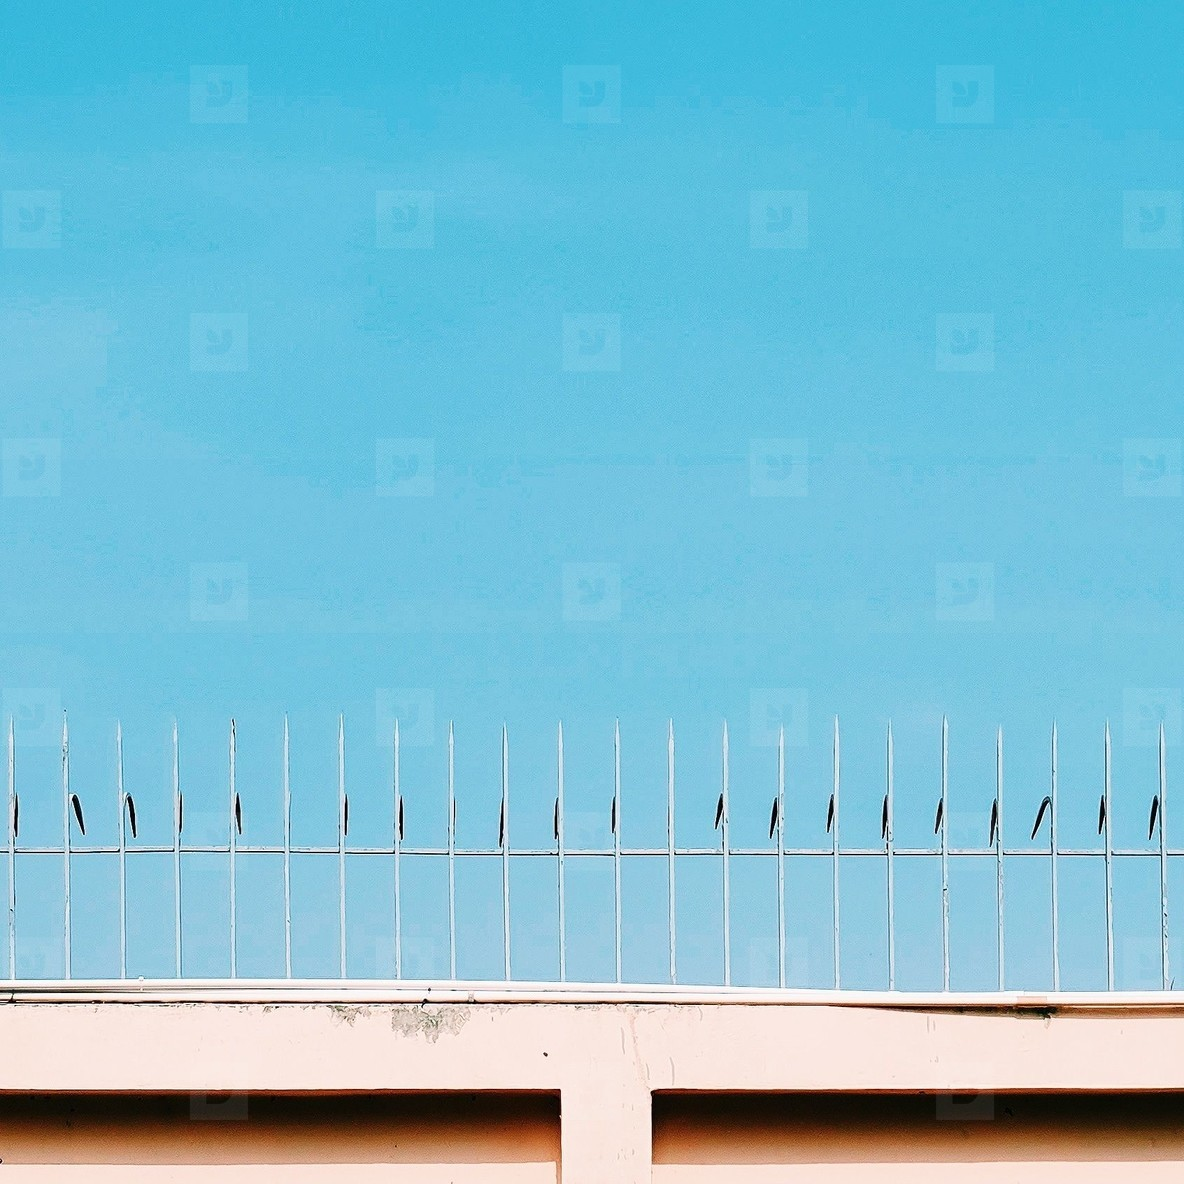 Top of a metal fence against sky